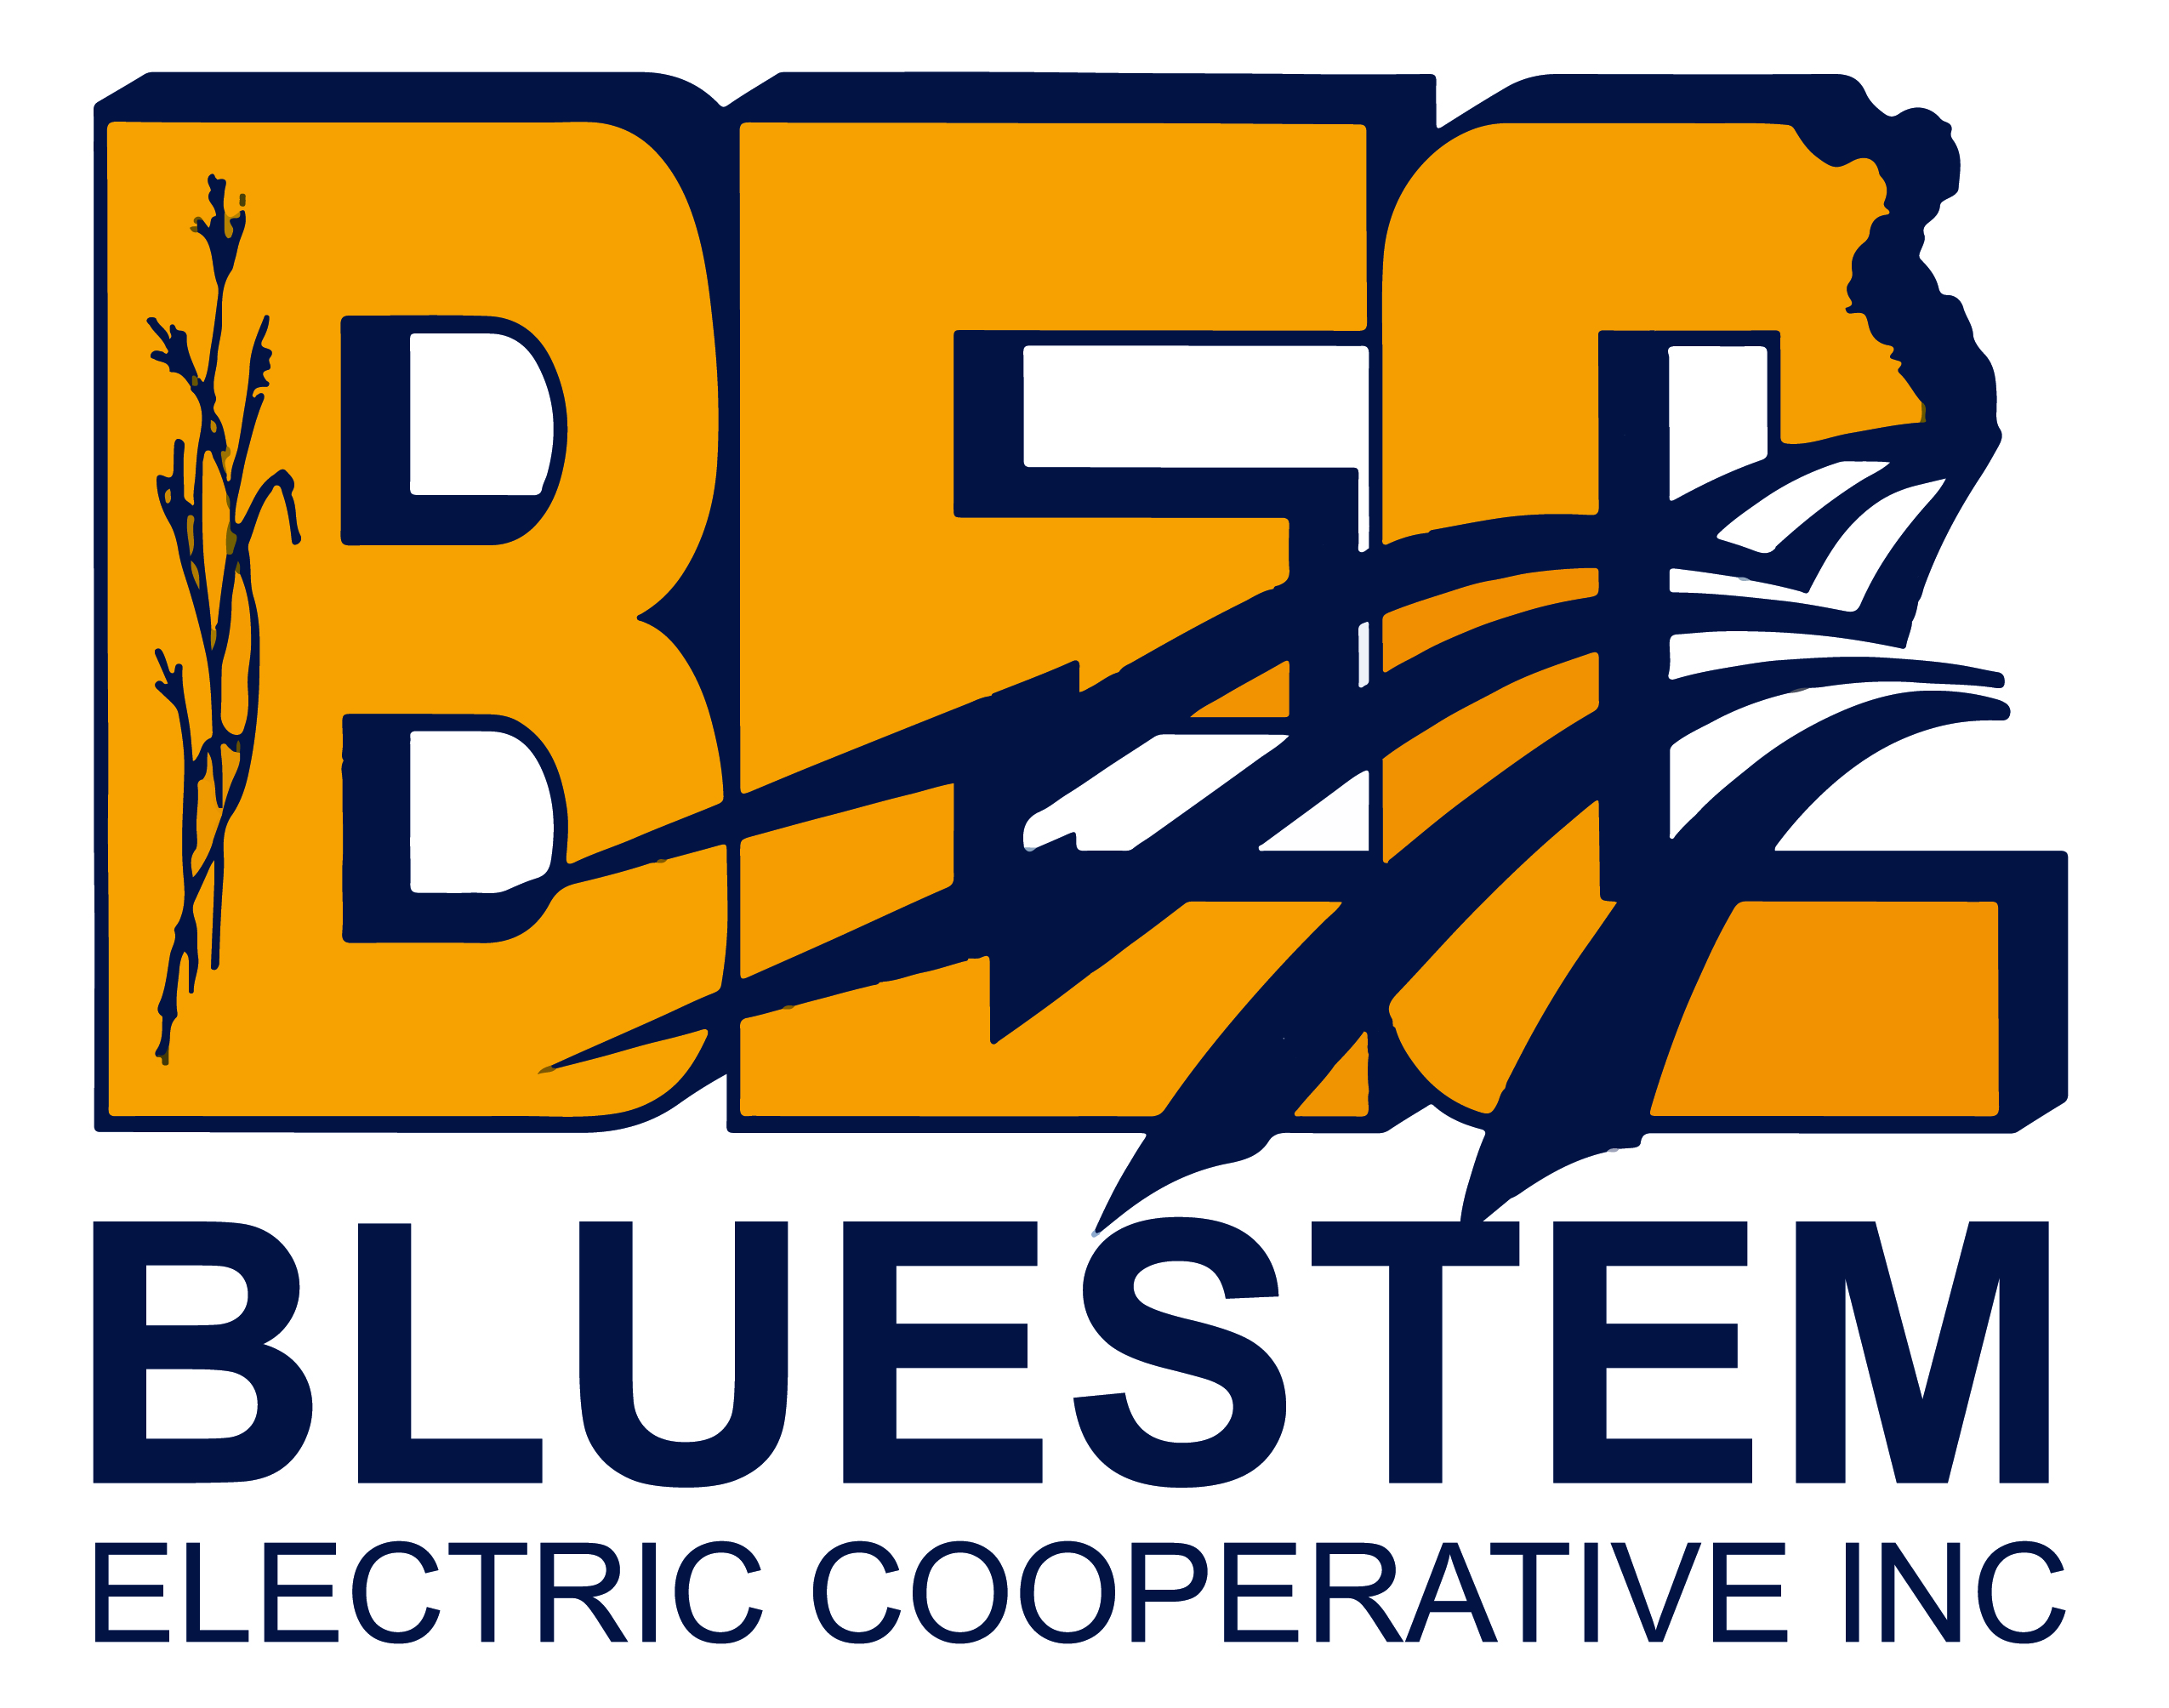 Bluestem Electric Cooperative